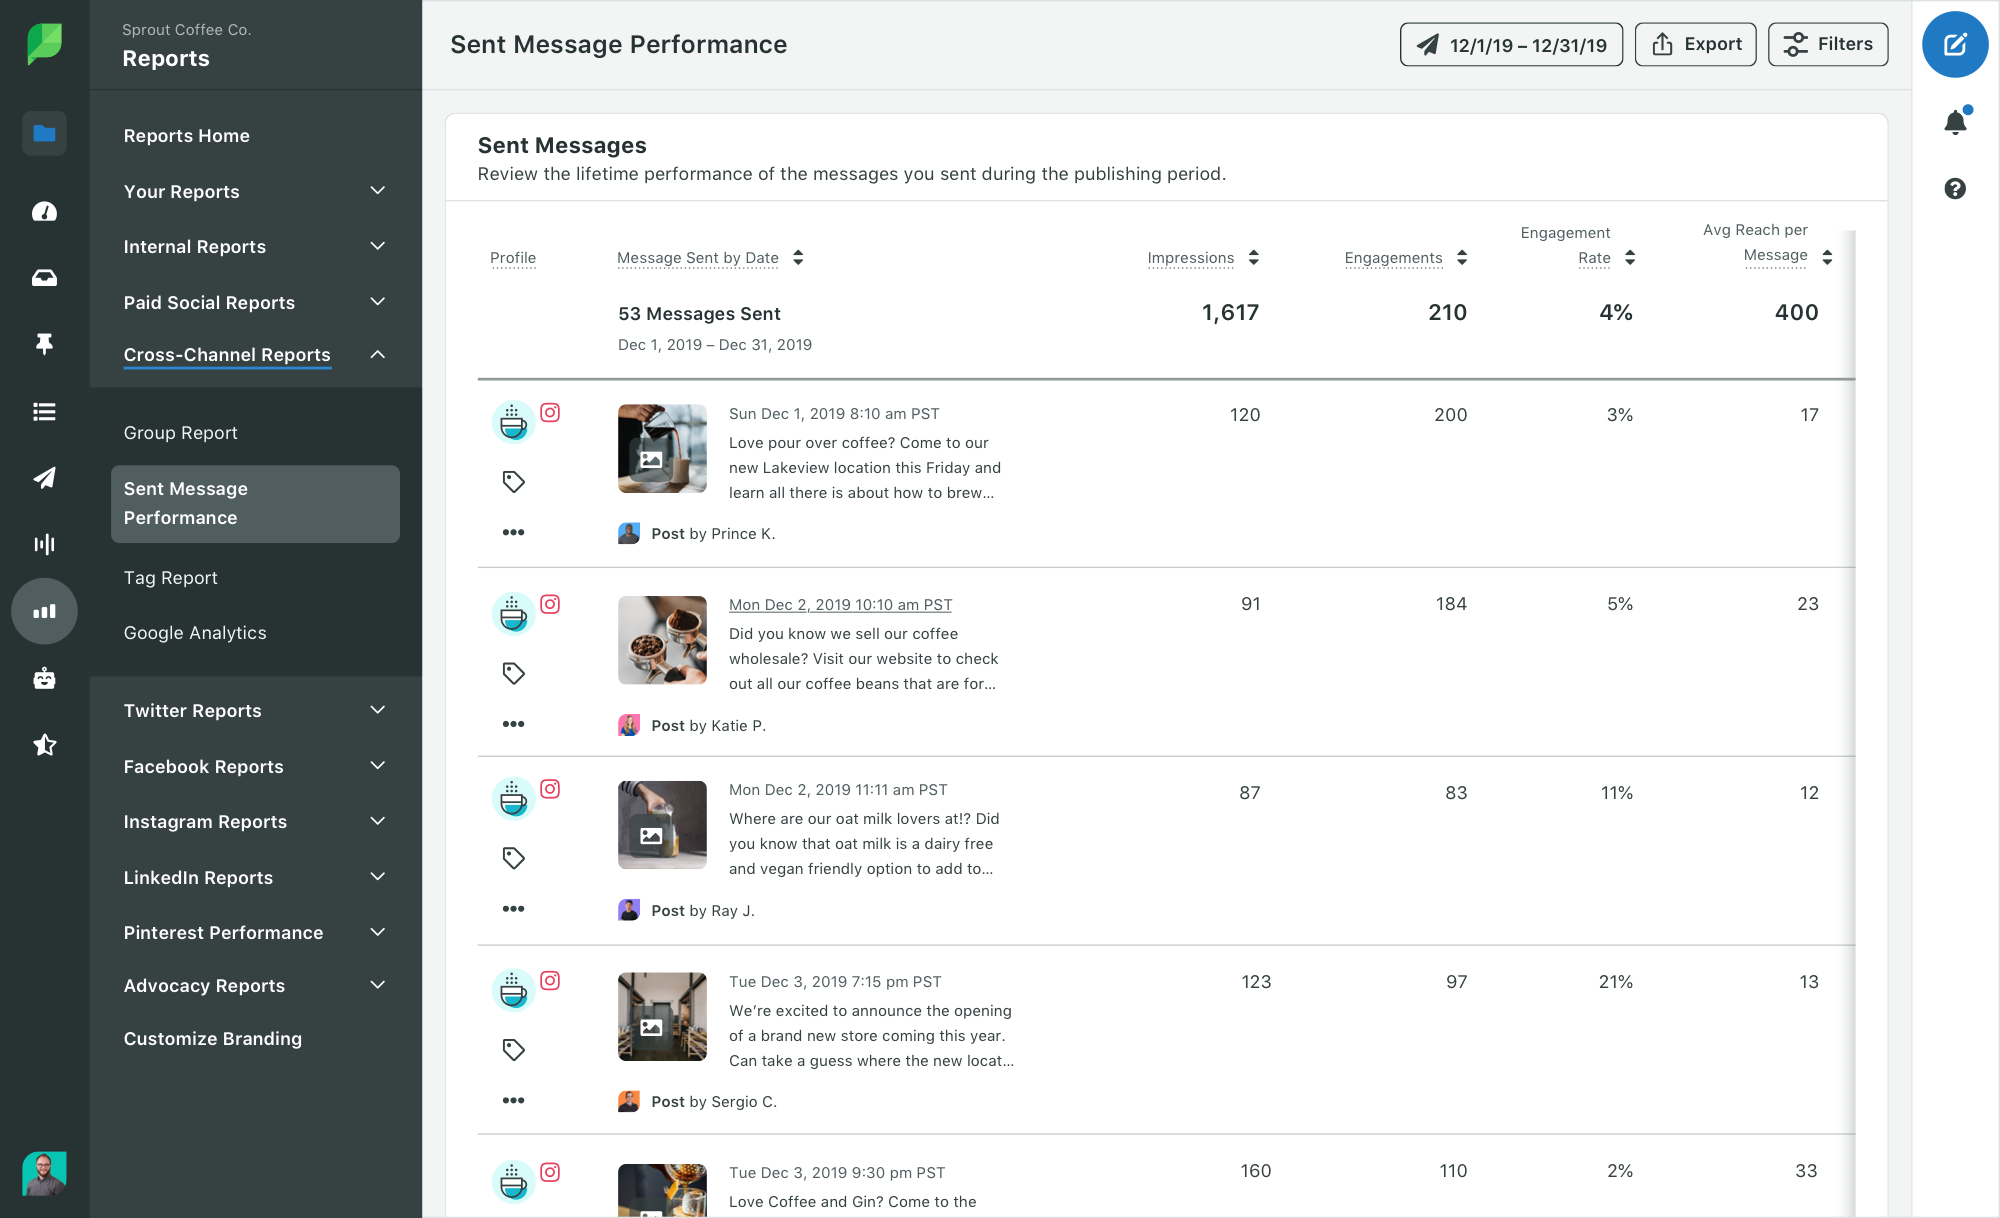 Sprout Social Product Image of Analytics Cross-Channel Sent Message Performance Report